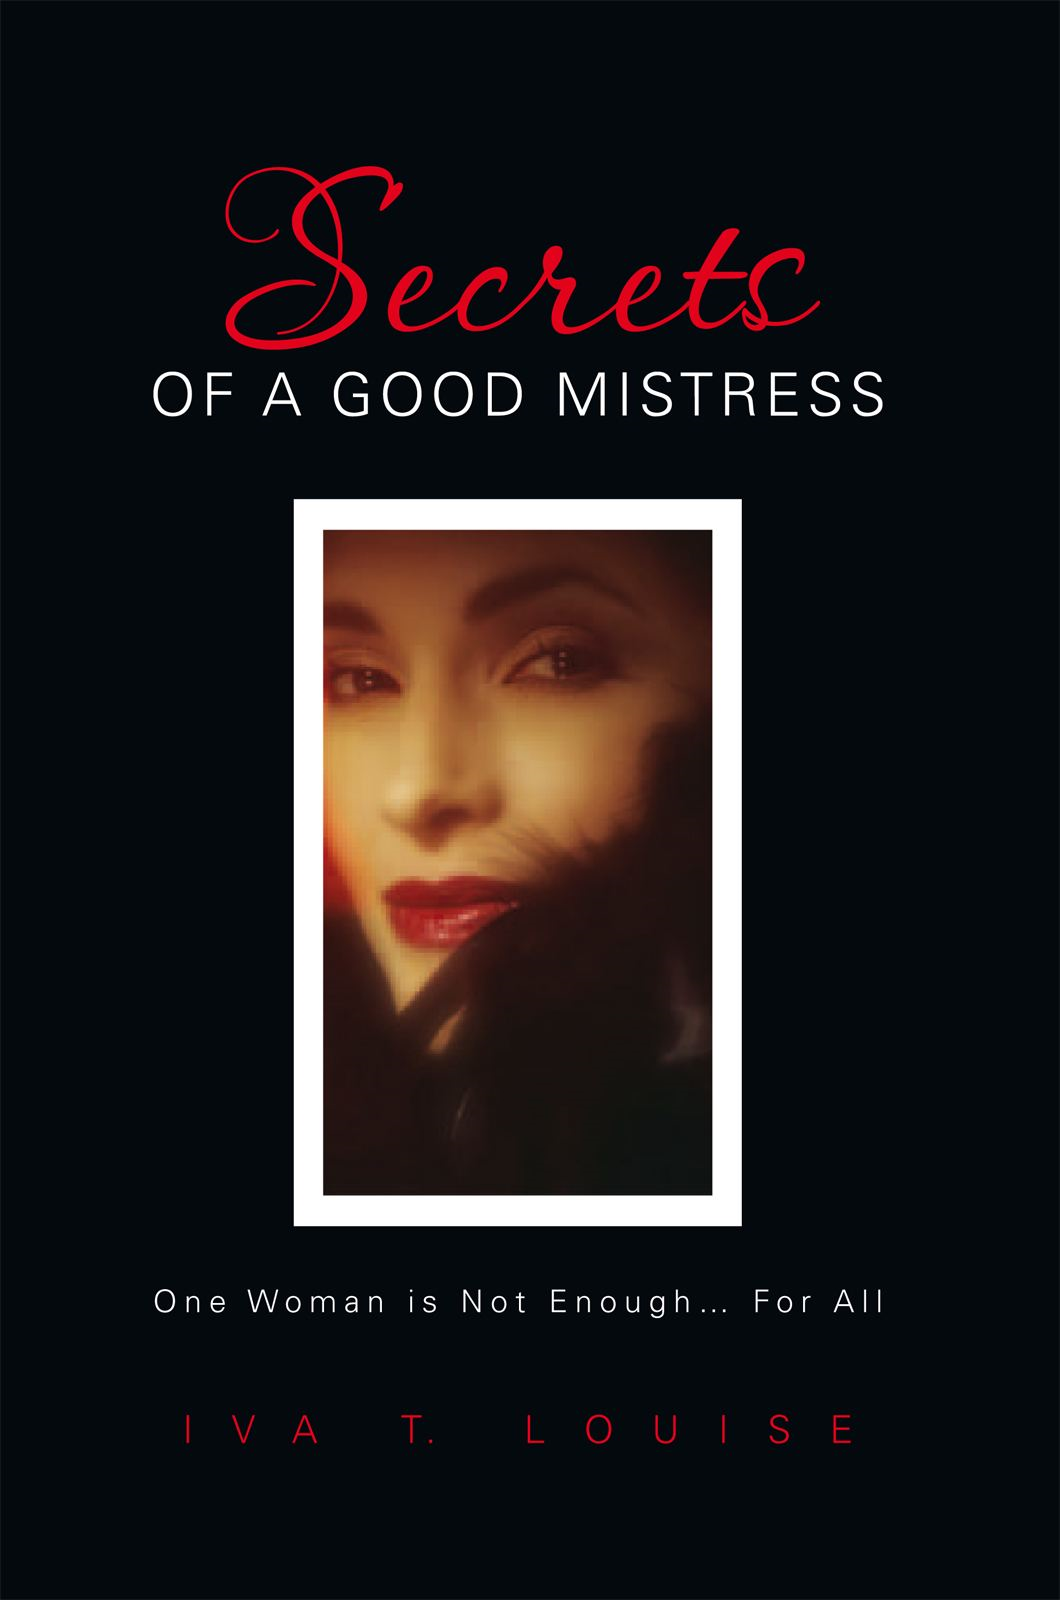 Secrets of a Good Mistress By: Iva T. Louise